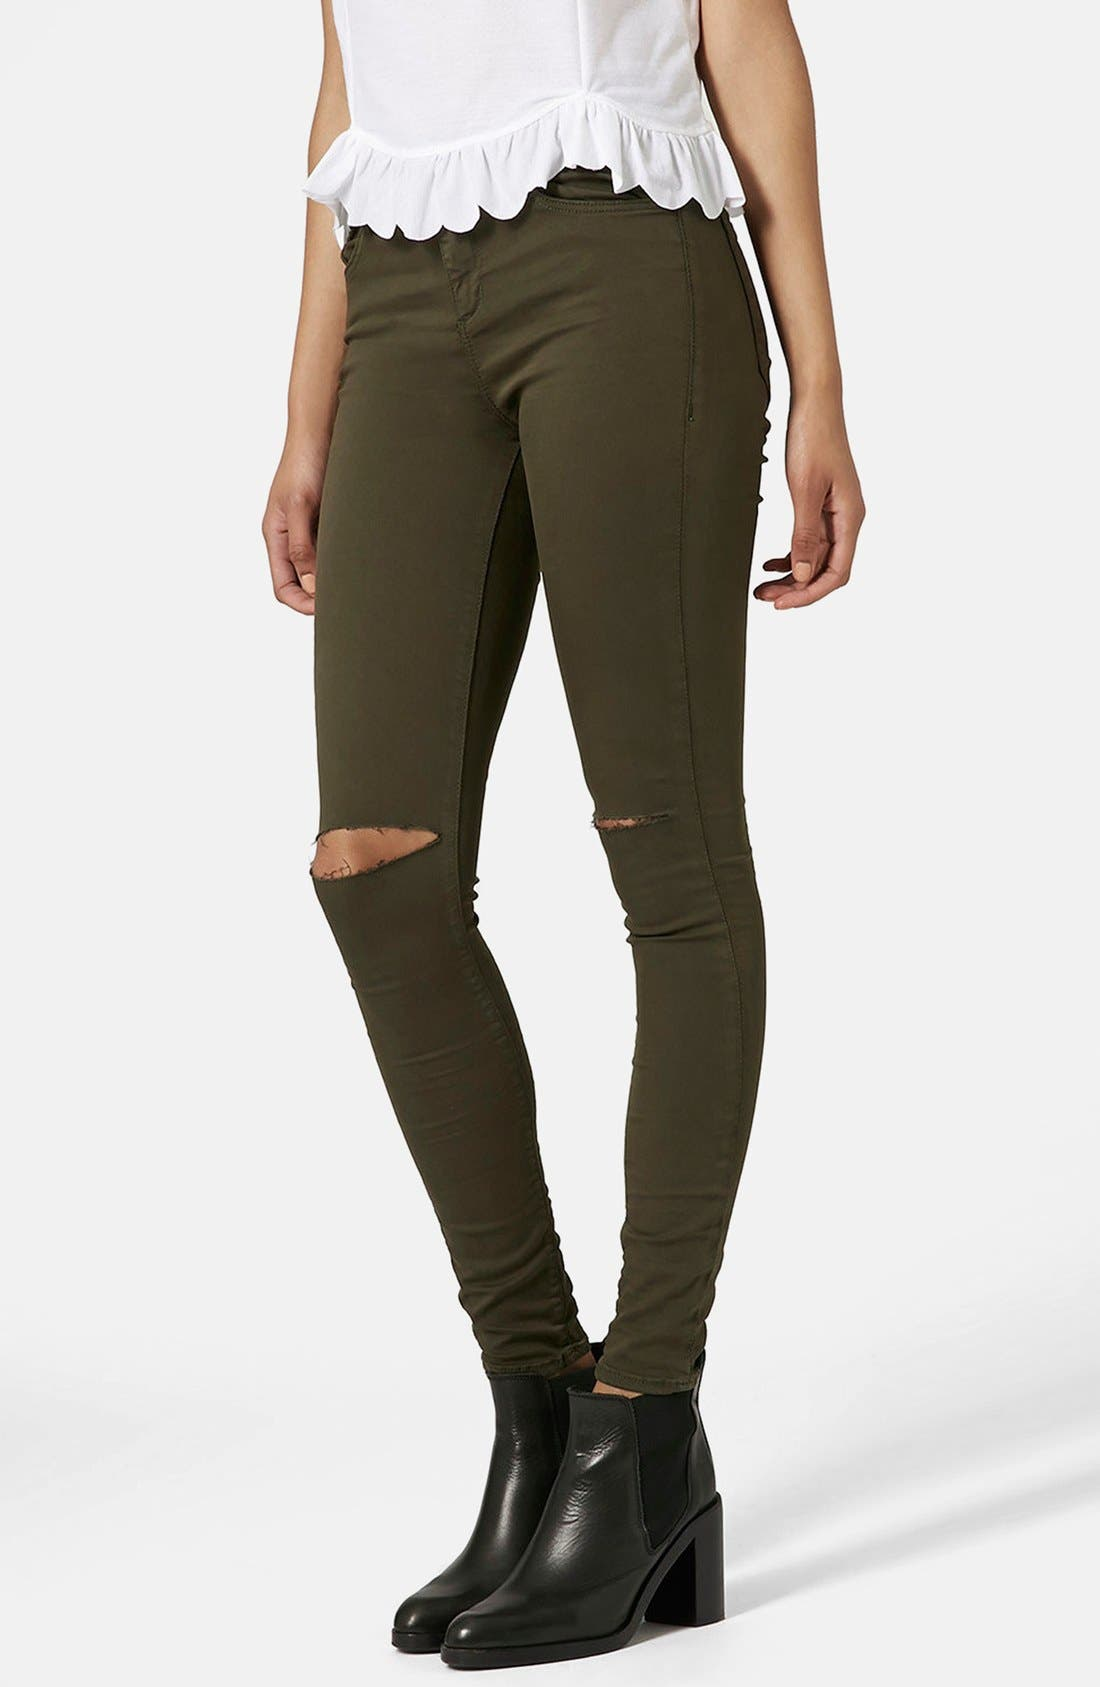 Alternate Image 1 Selected - Topshop Moto 'Leigh' Ripped Skinny Jeans (Olive) Short